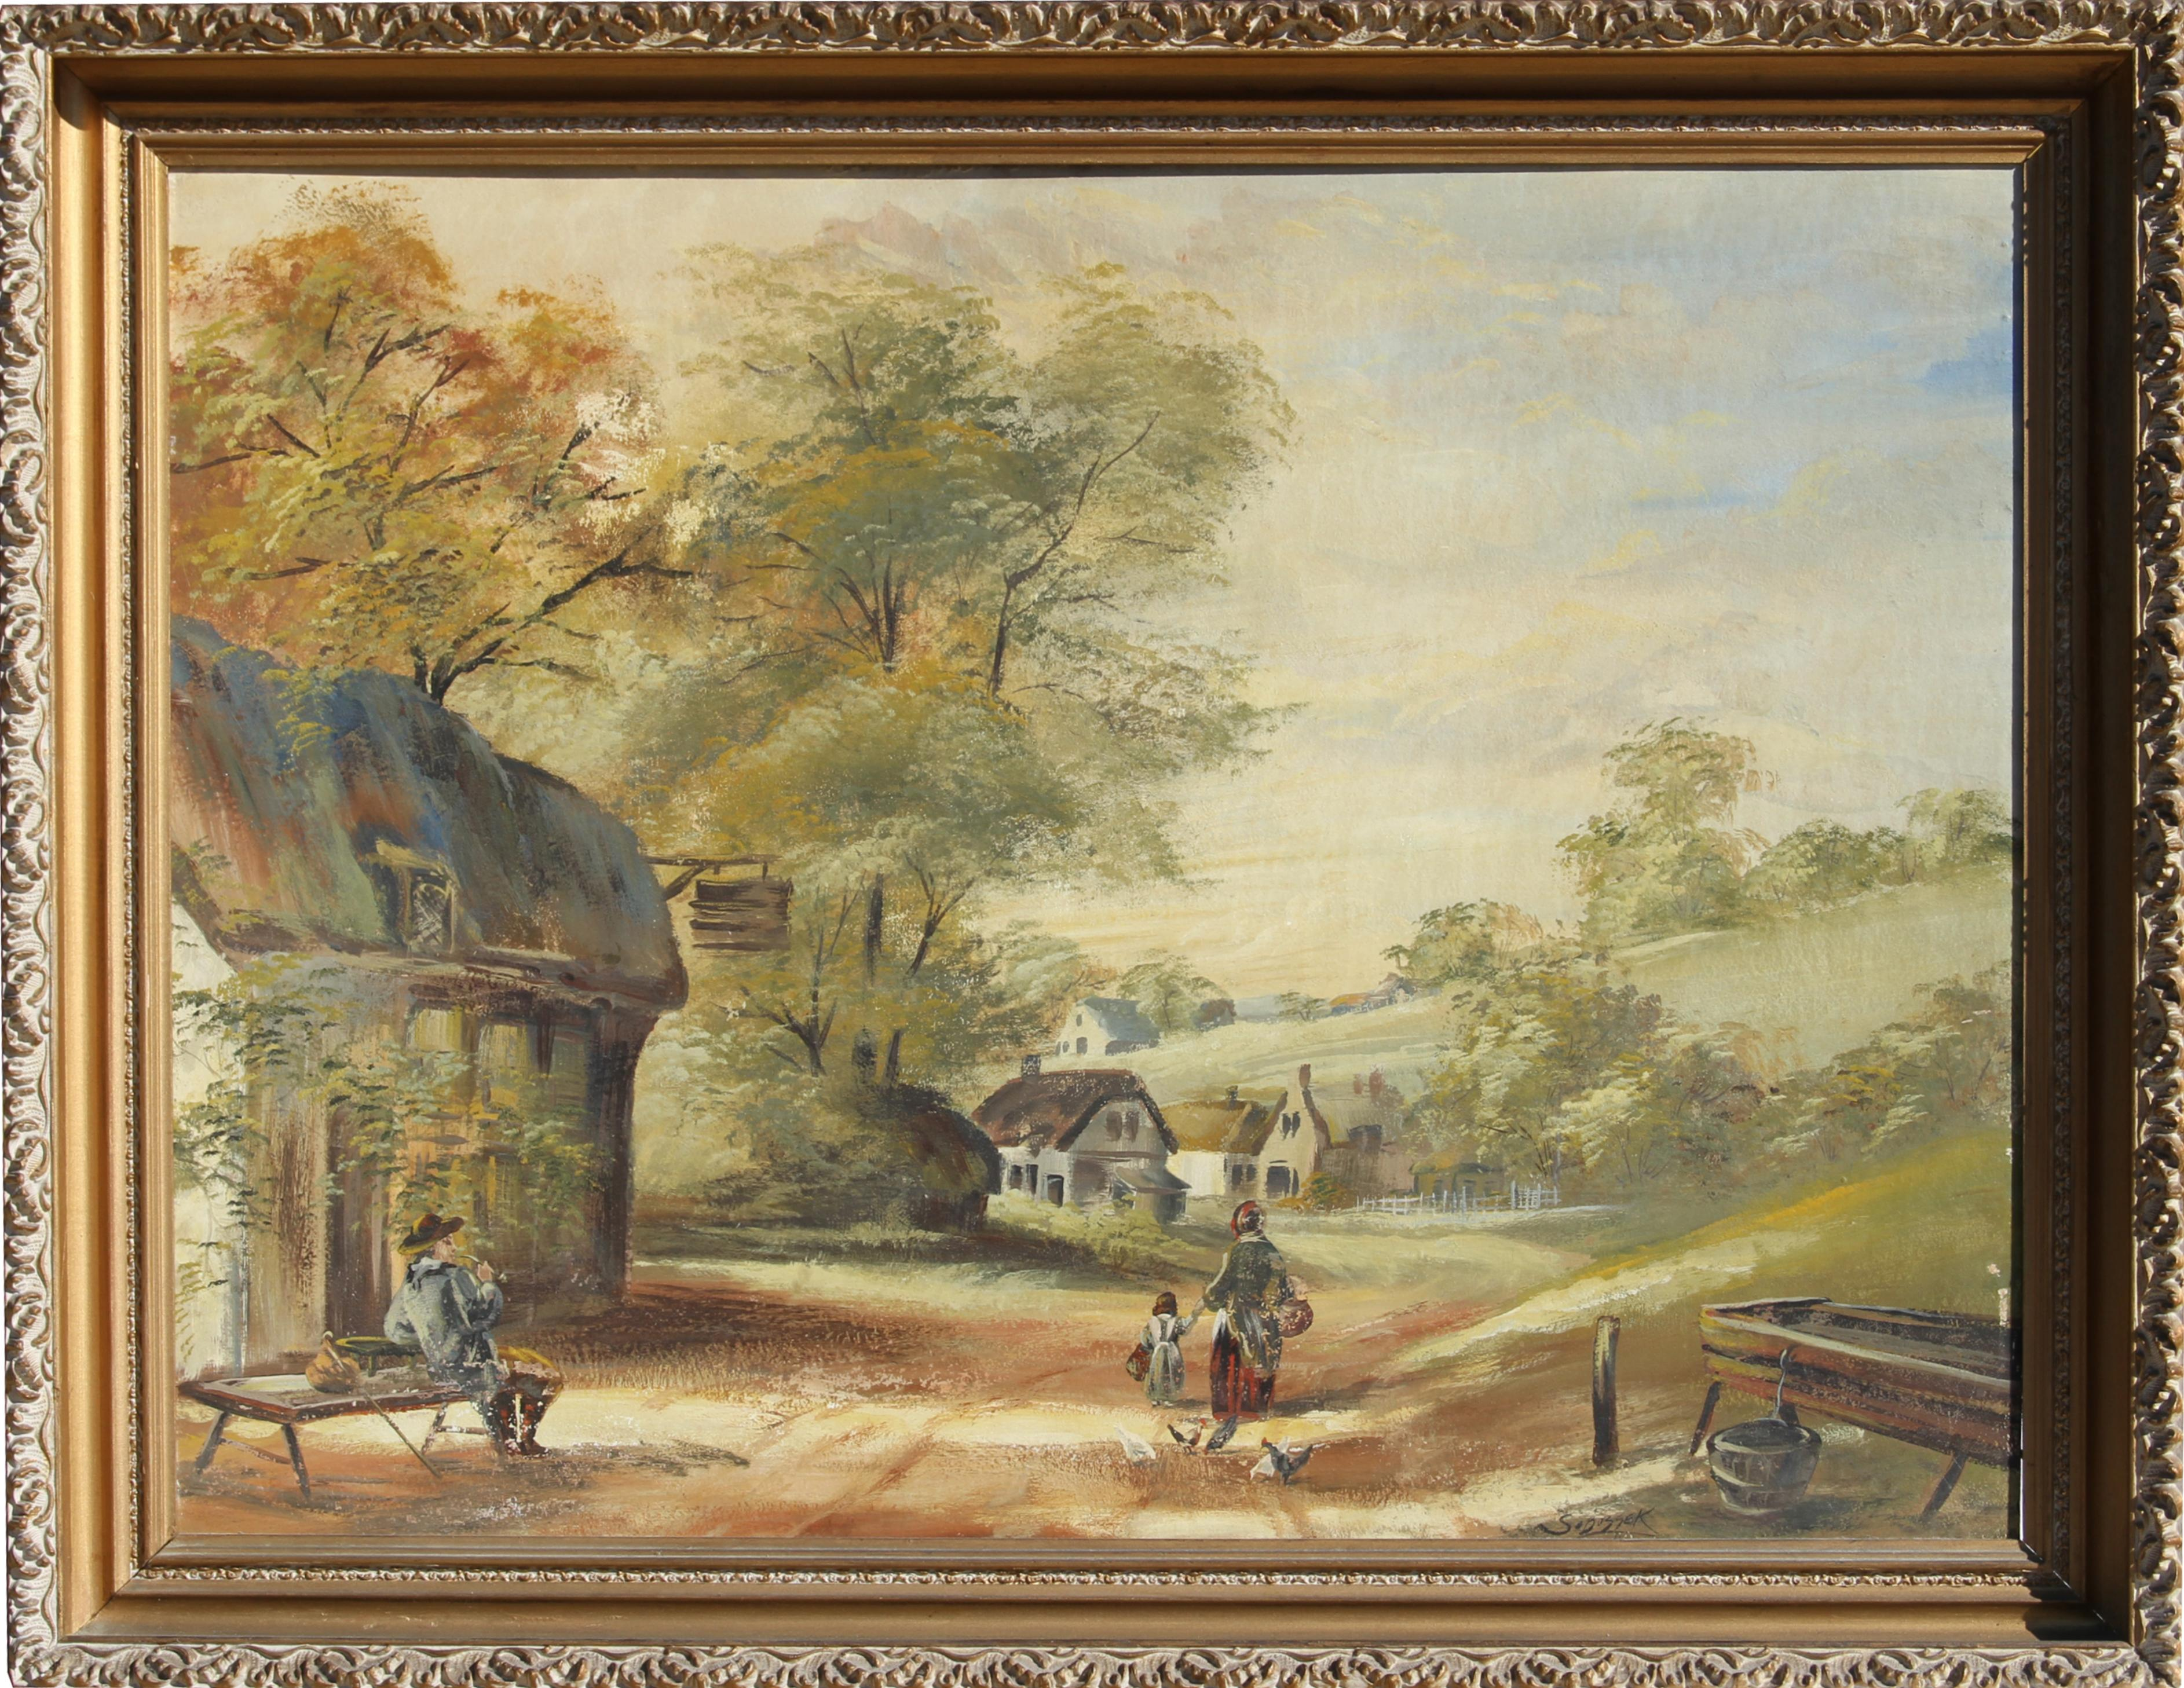 Country Landscape, Oil Painting by Stanley Sobossek